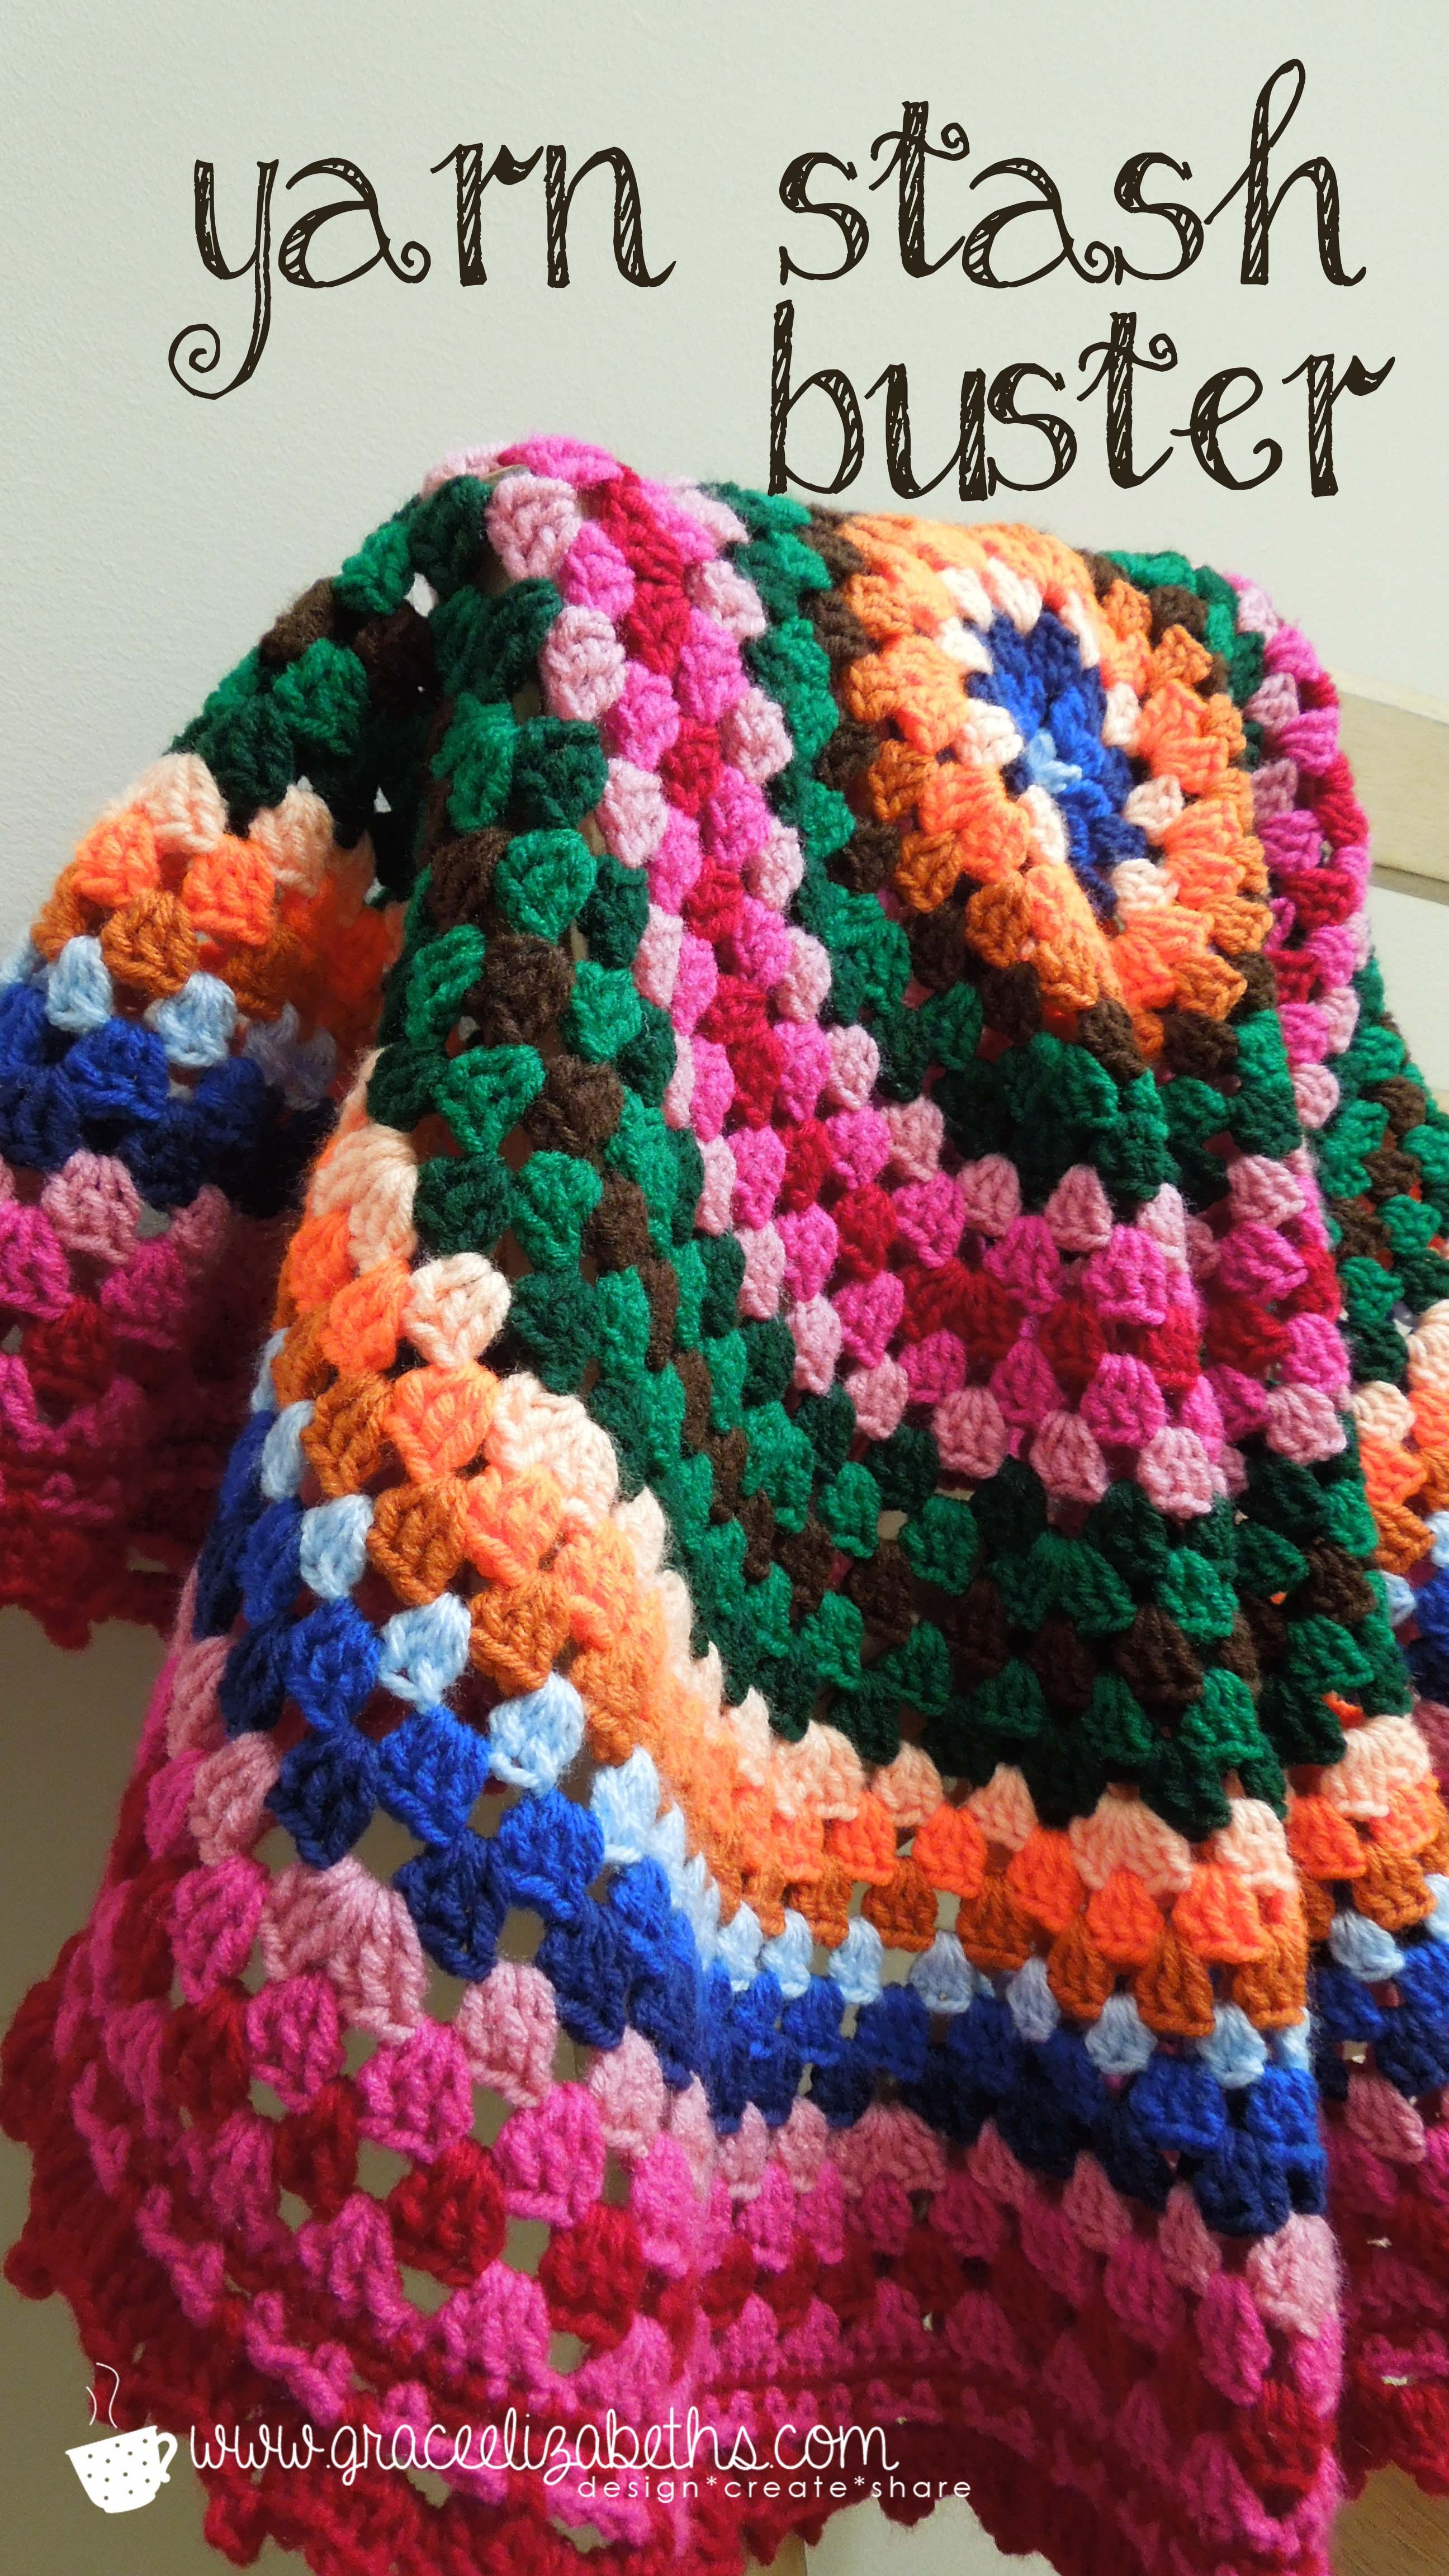 Unique Crochet Circle Baby Blanket Grace Elizabeths Crochet Circle Blanket Of Innovative 46 Models Crochet Circle Blanket